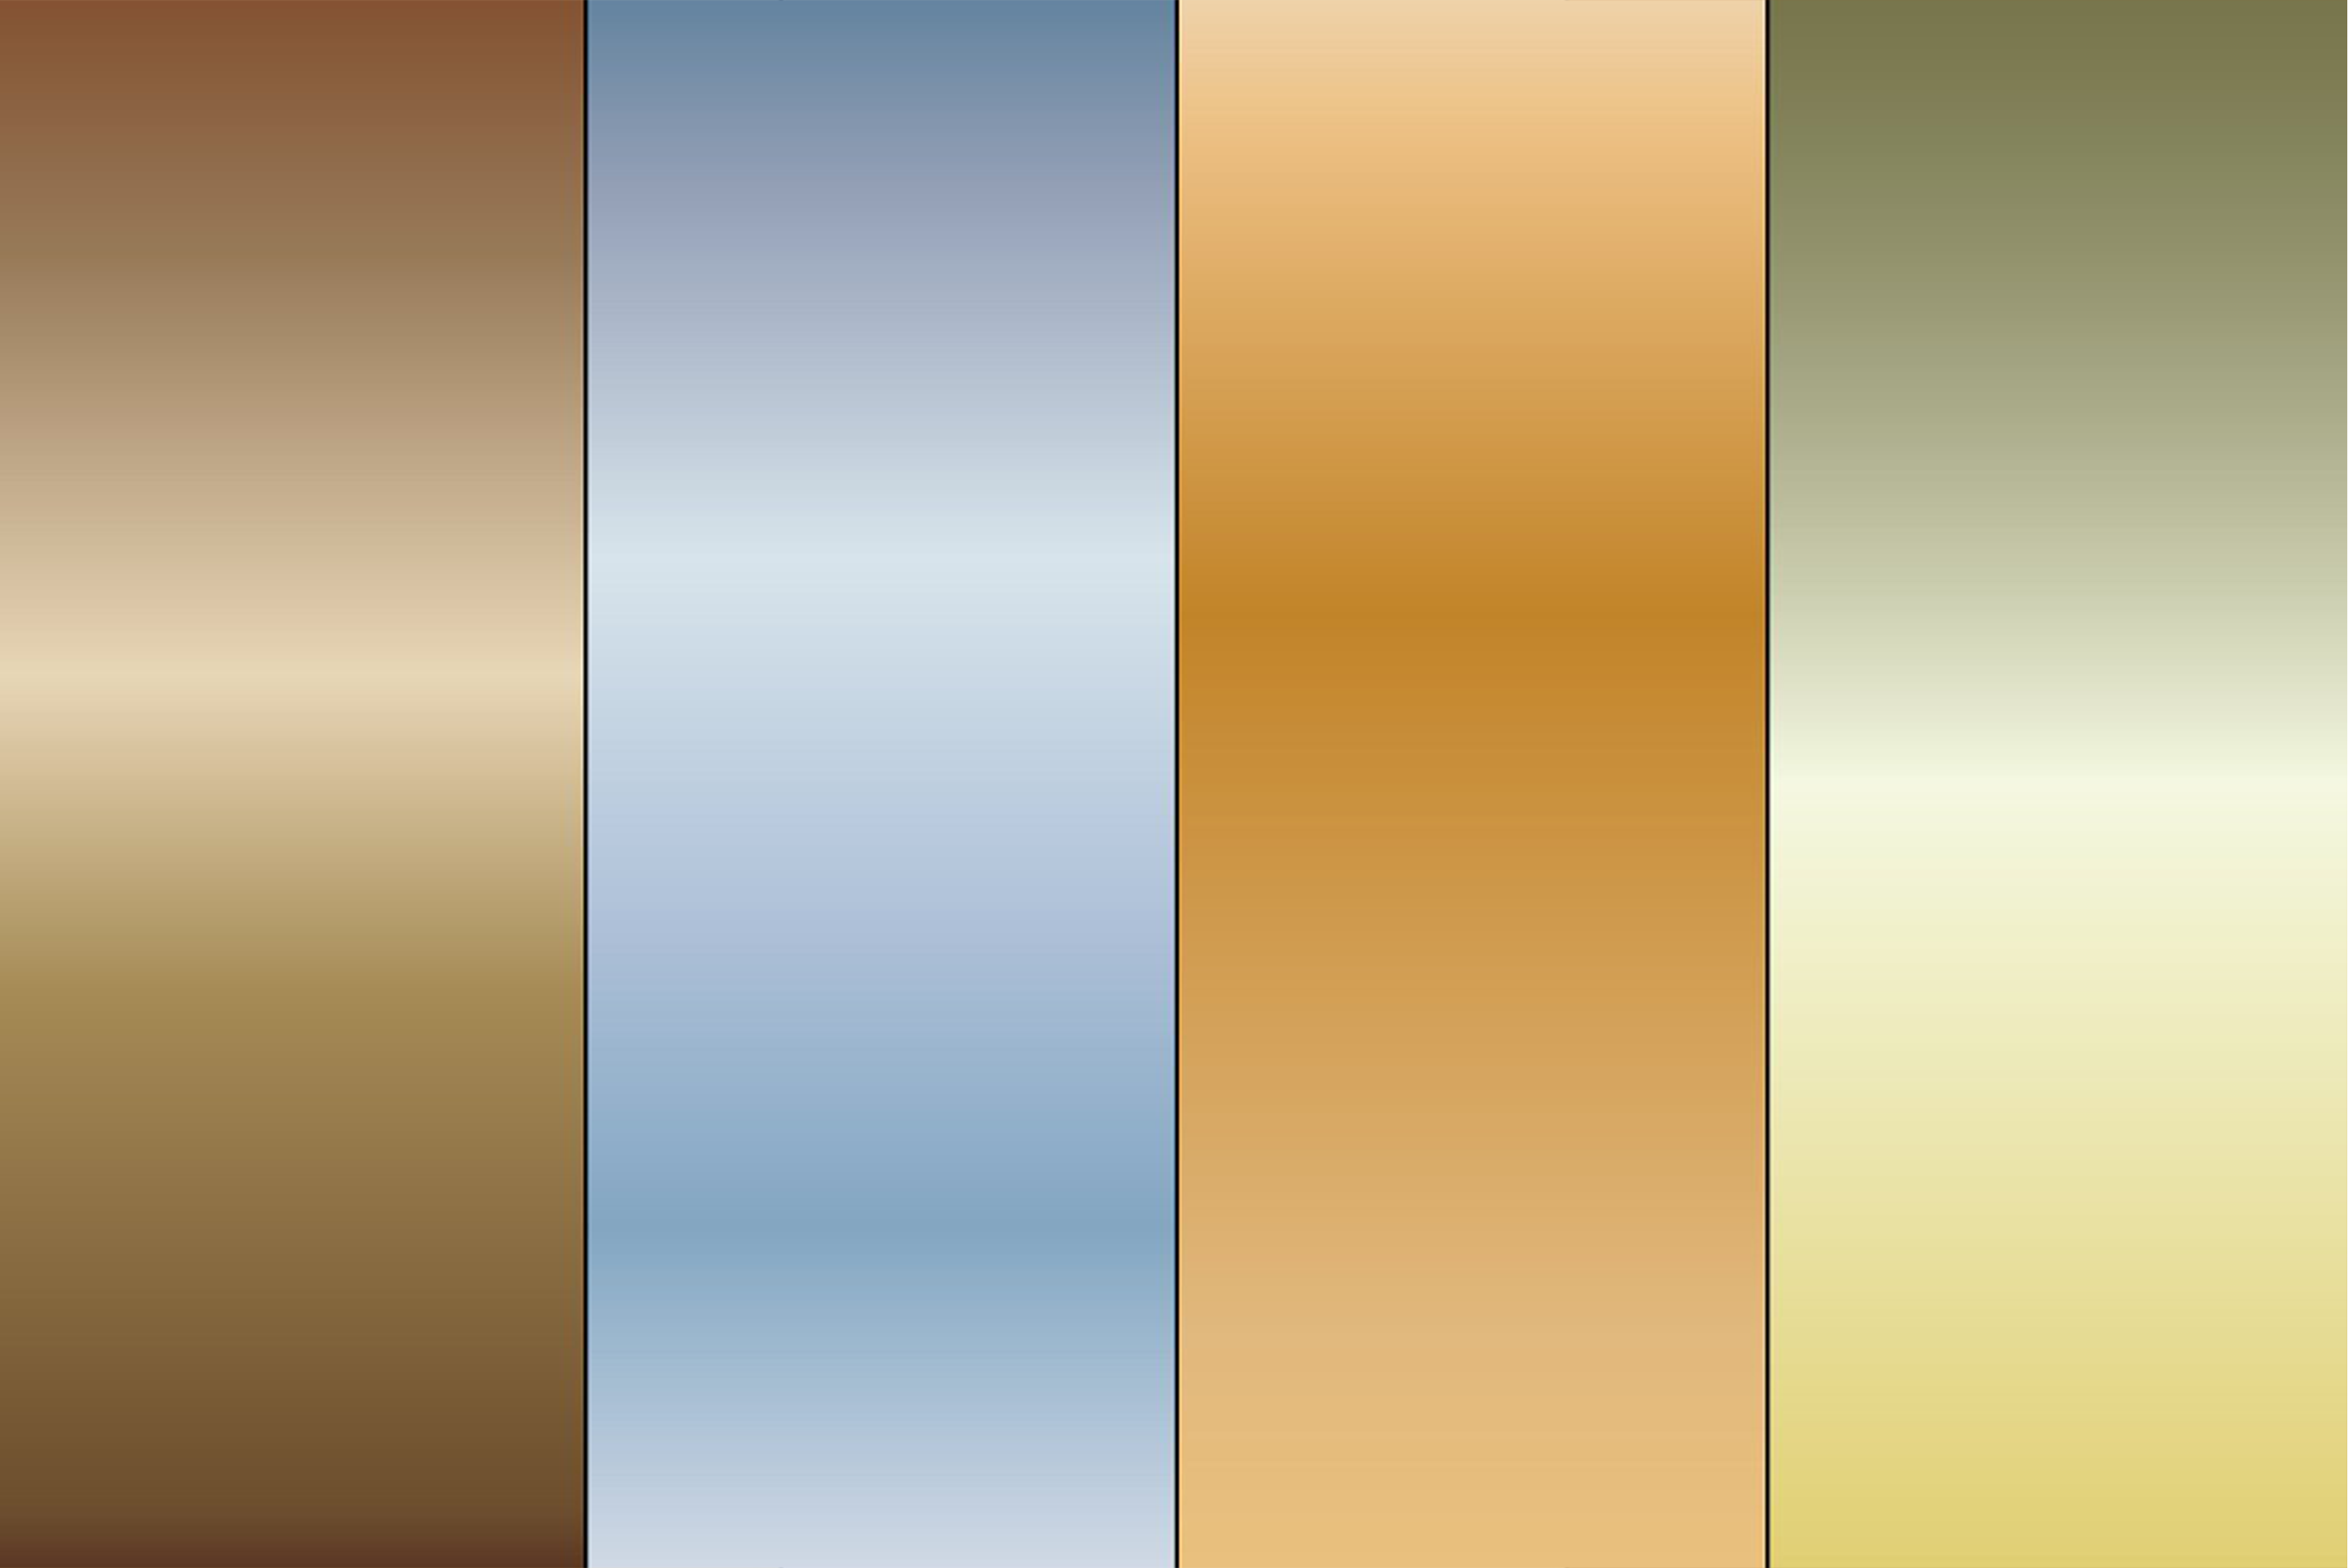 Gradient Metallic Backgrounds example image 4